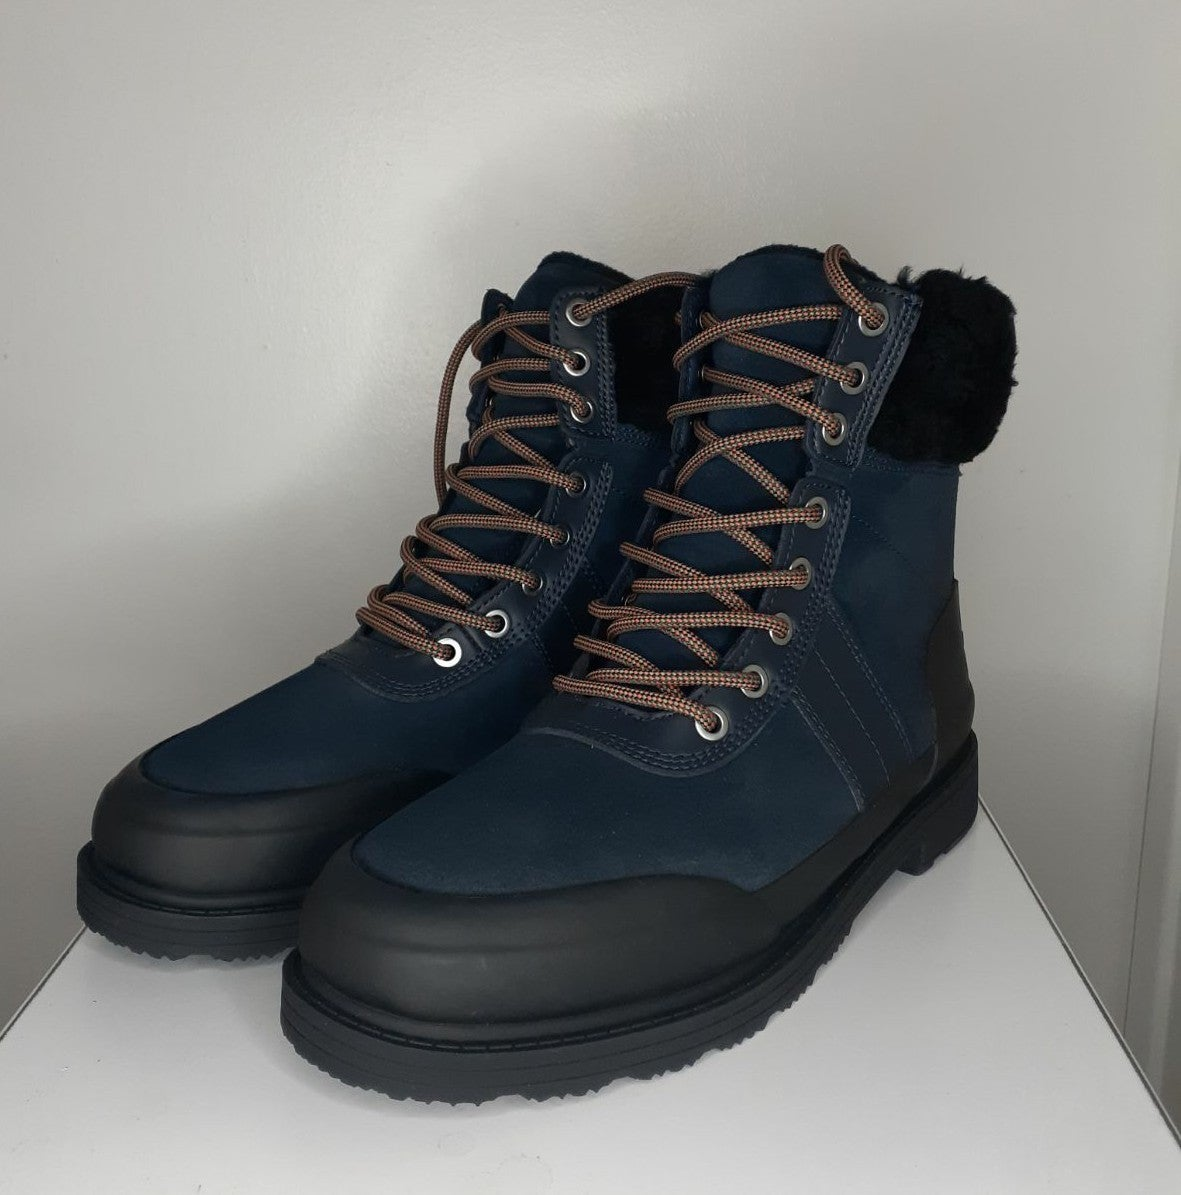 Womens Hunter Insulated Boots